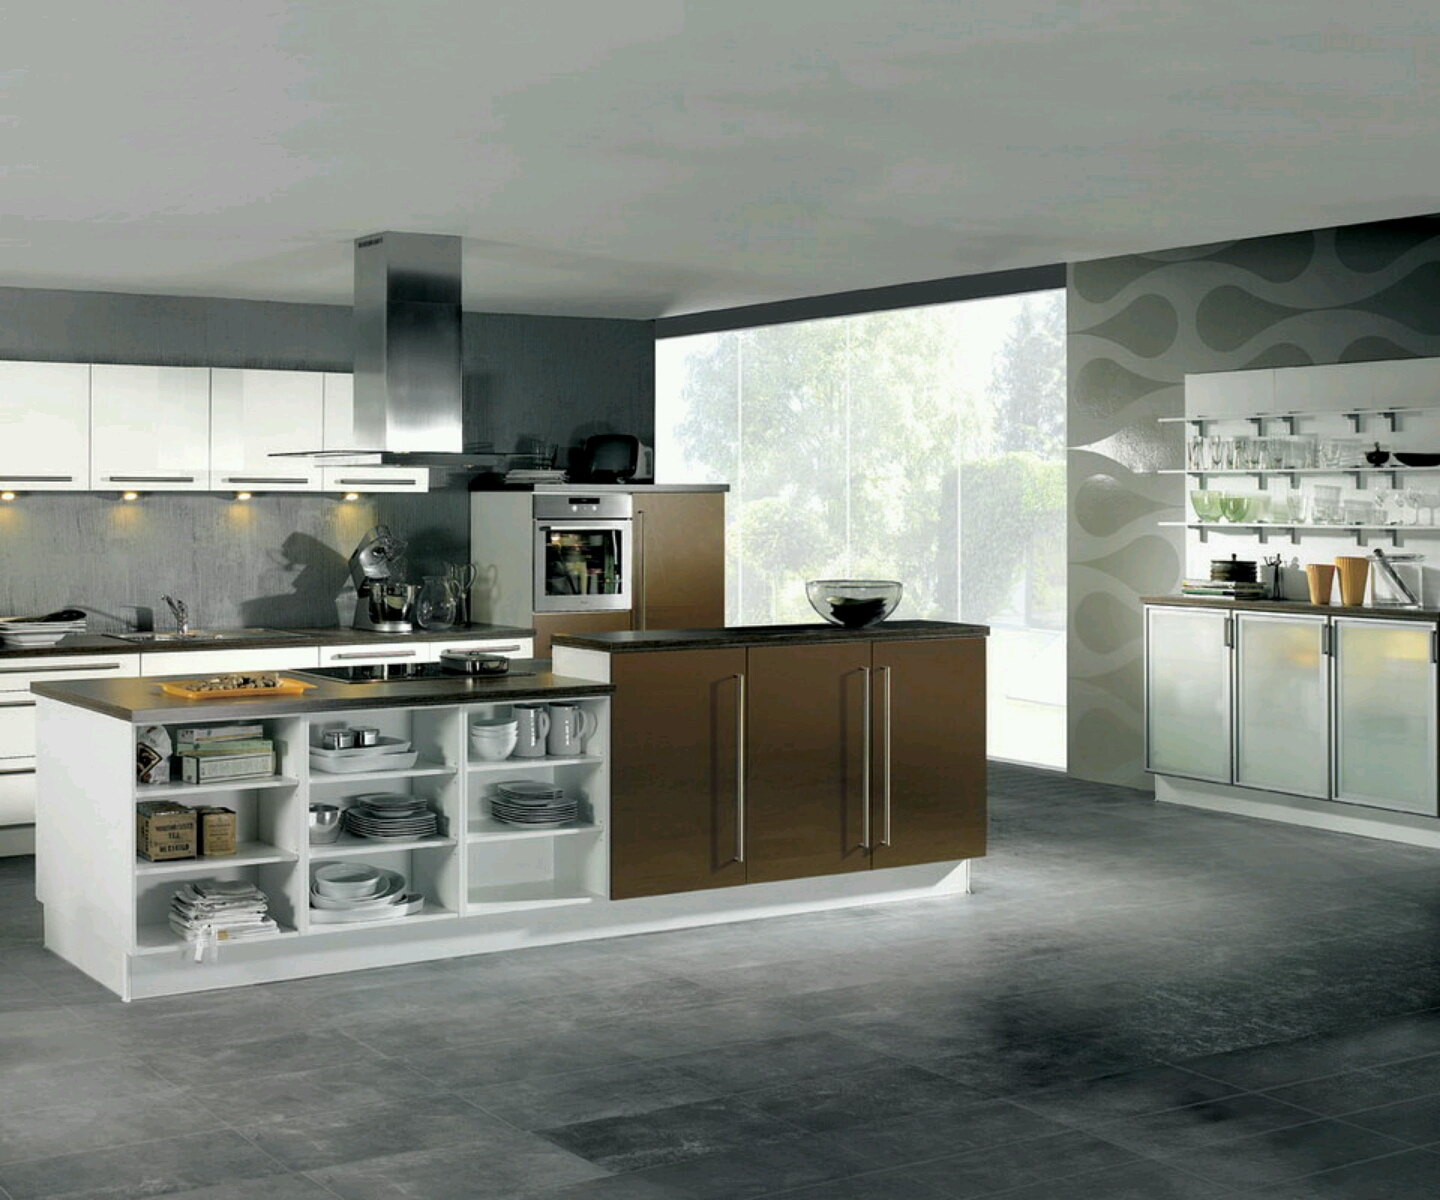 New home designs latest ultra modern kitchen designs ideas for New kitchen remodel ideas